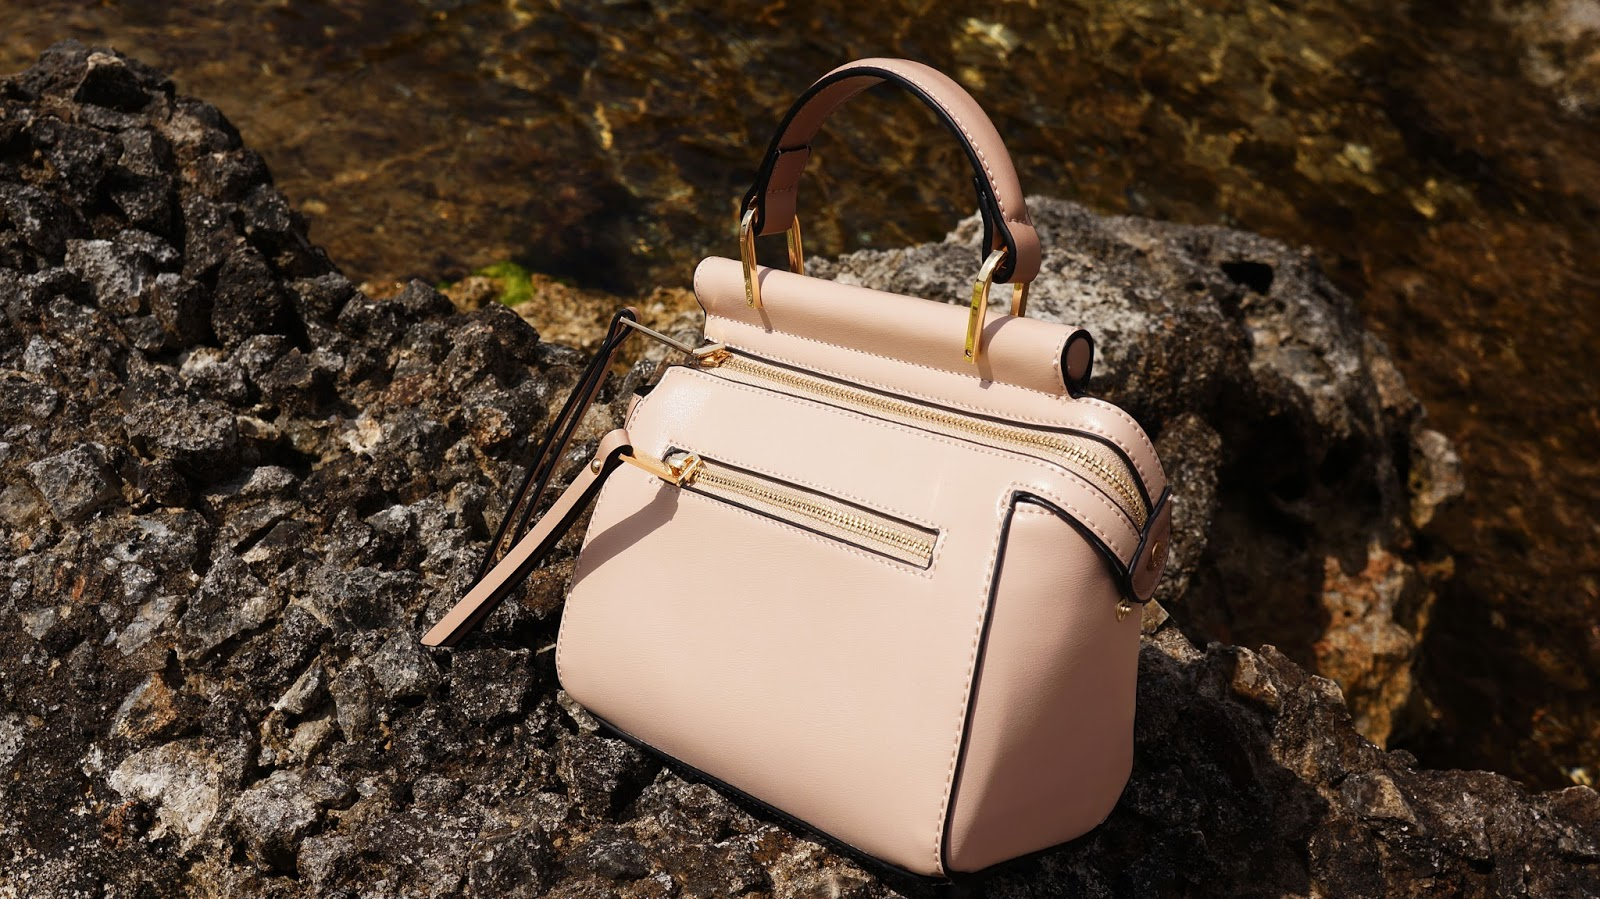 Dune London Mini shoulder bag in blush pink